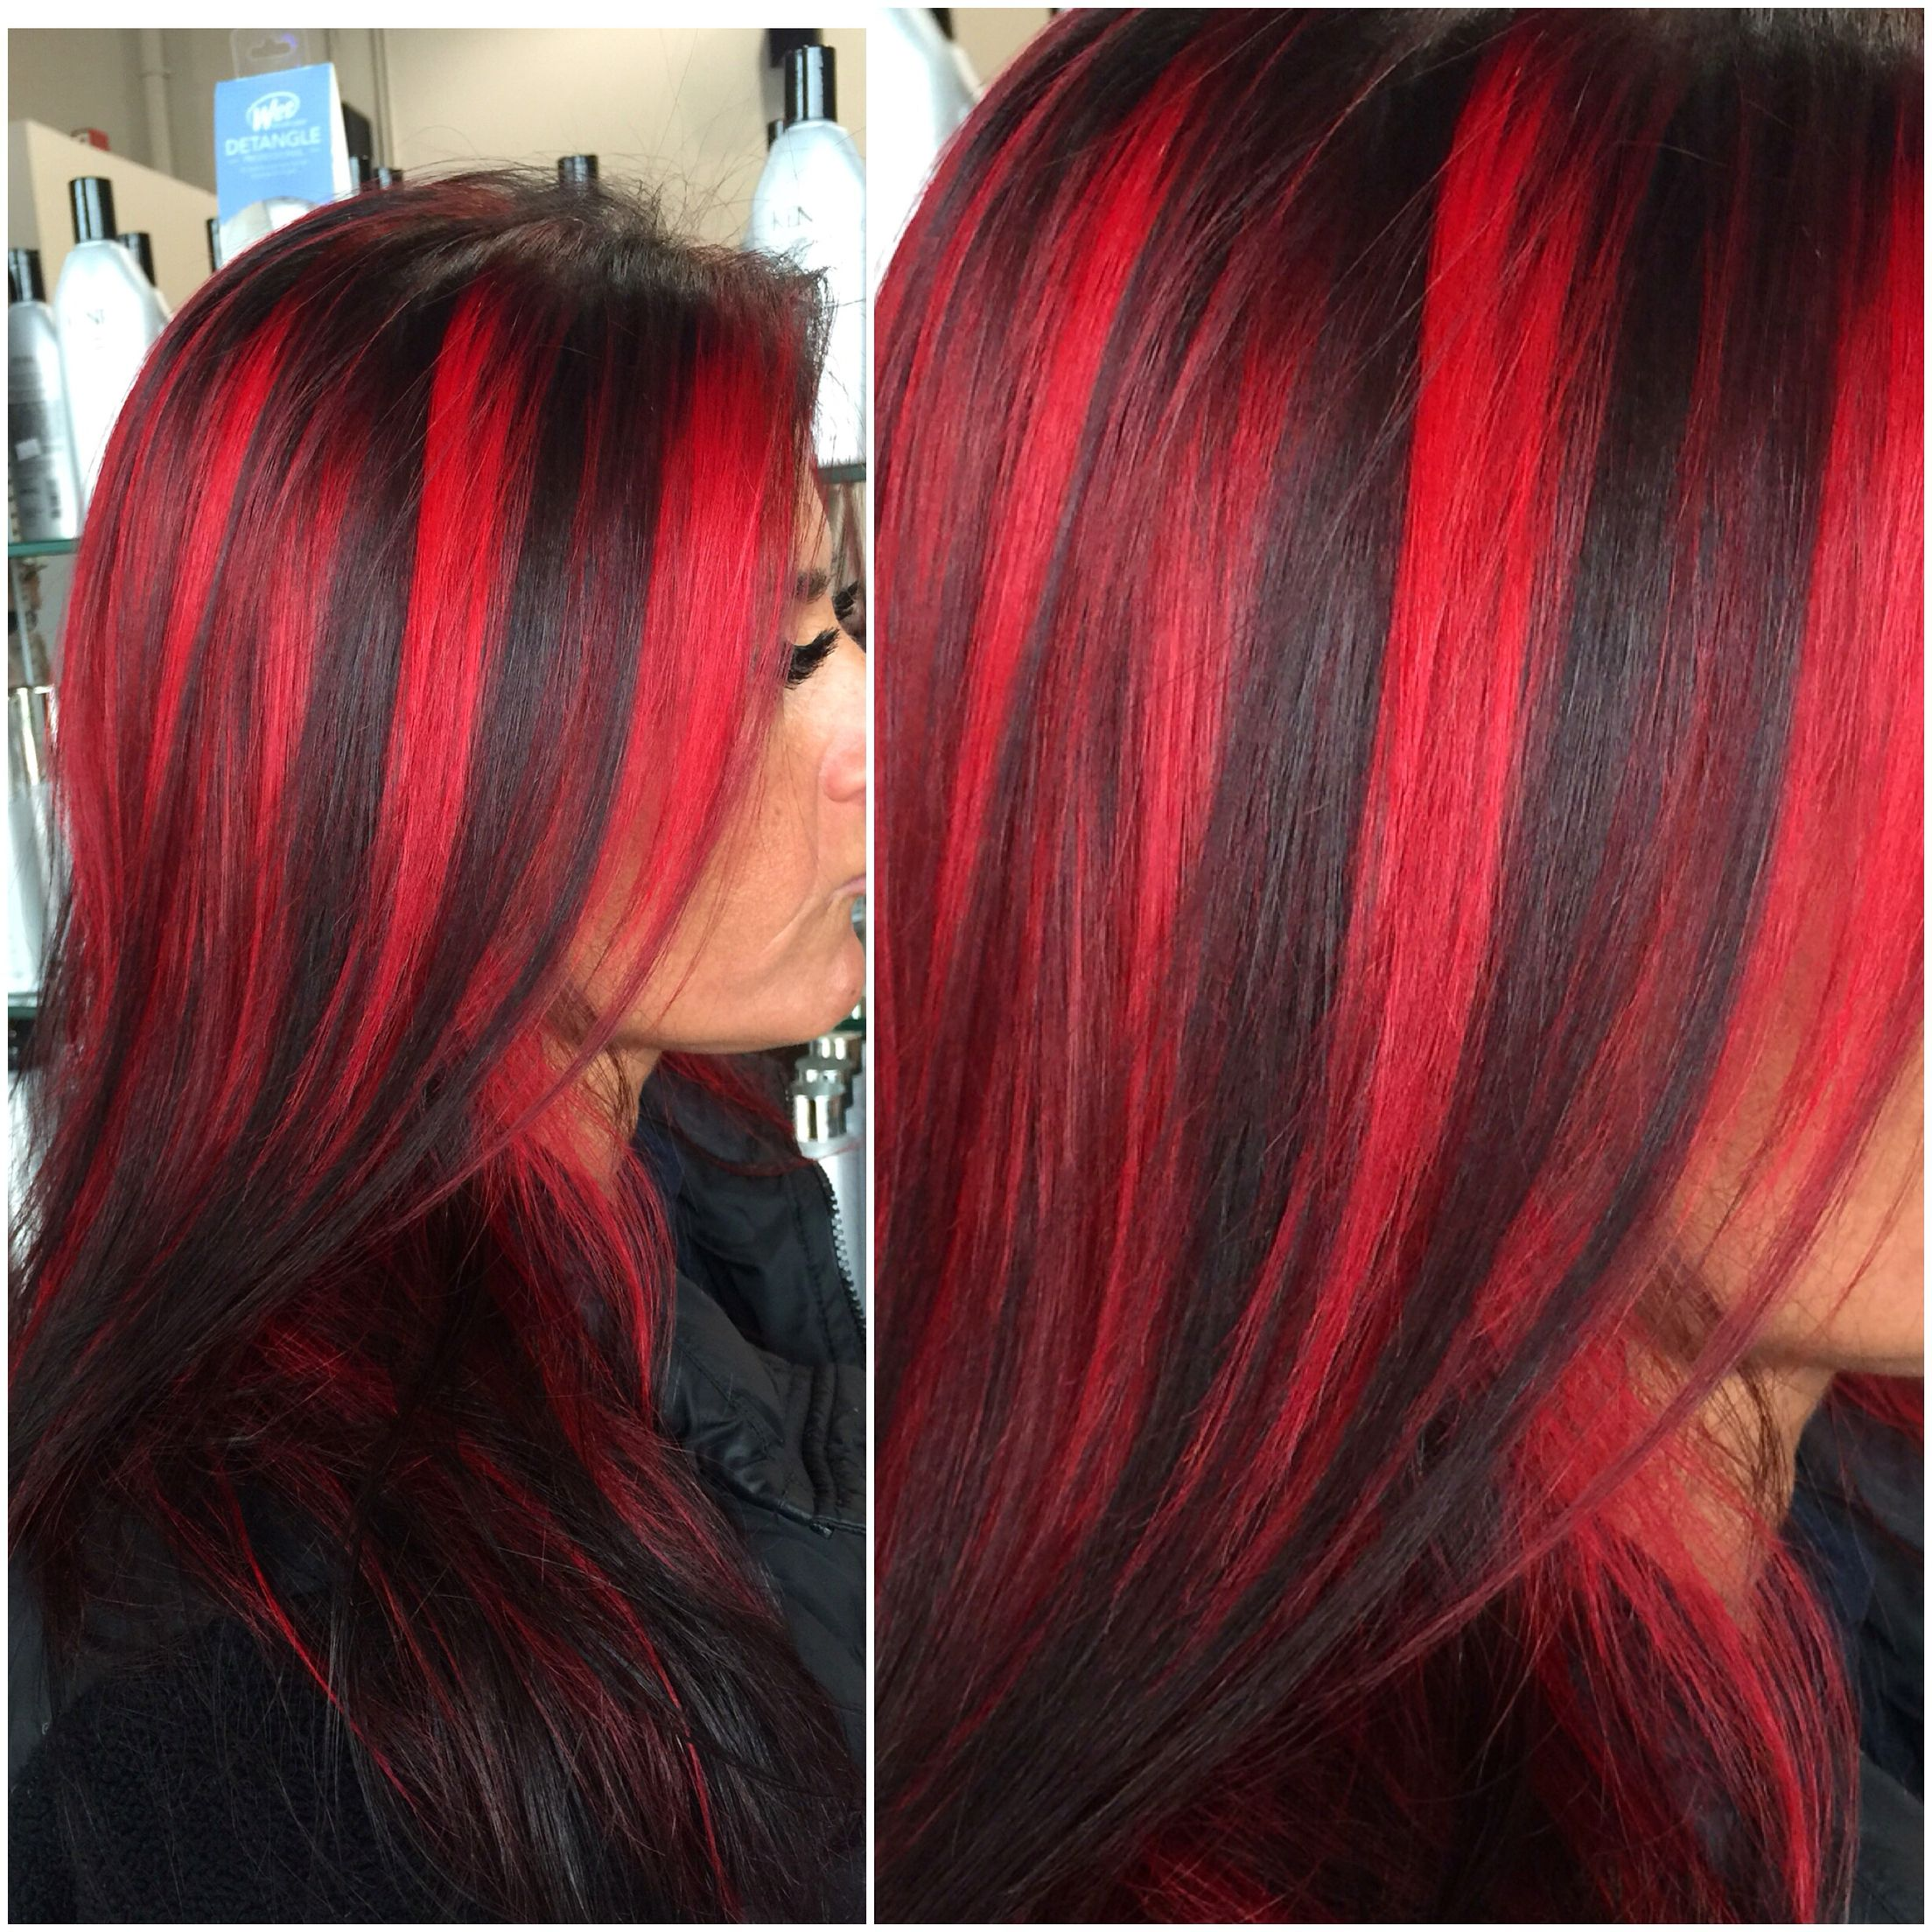 Fb3acb1a430d4a672a430a033fa0fffag 7501000 pixels hair chunky red highlights by hairbyangelaalberici long islandny red black hairshort pmusecretfo Images